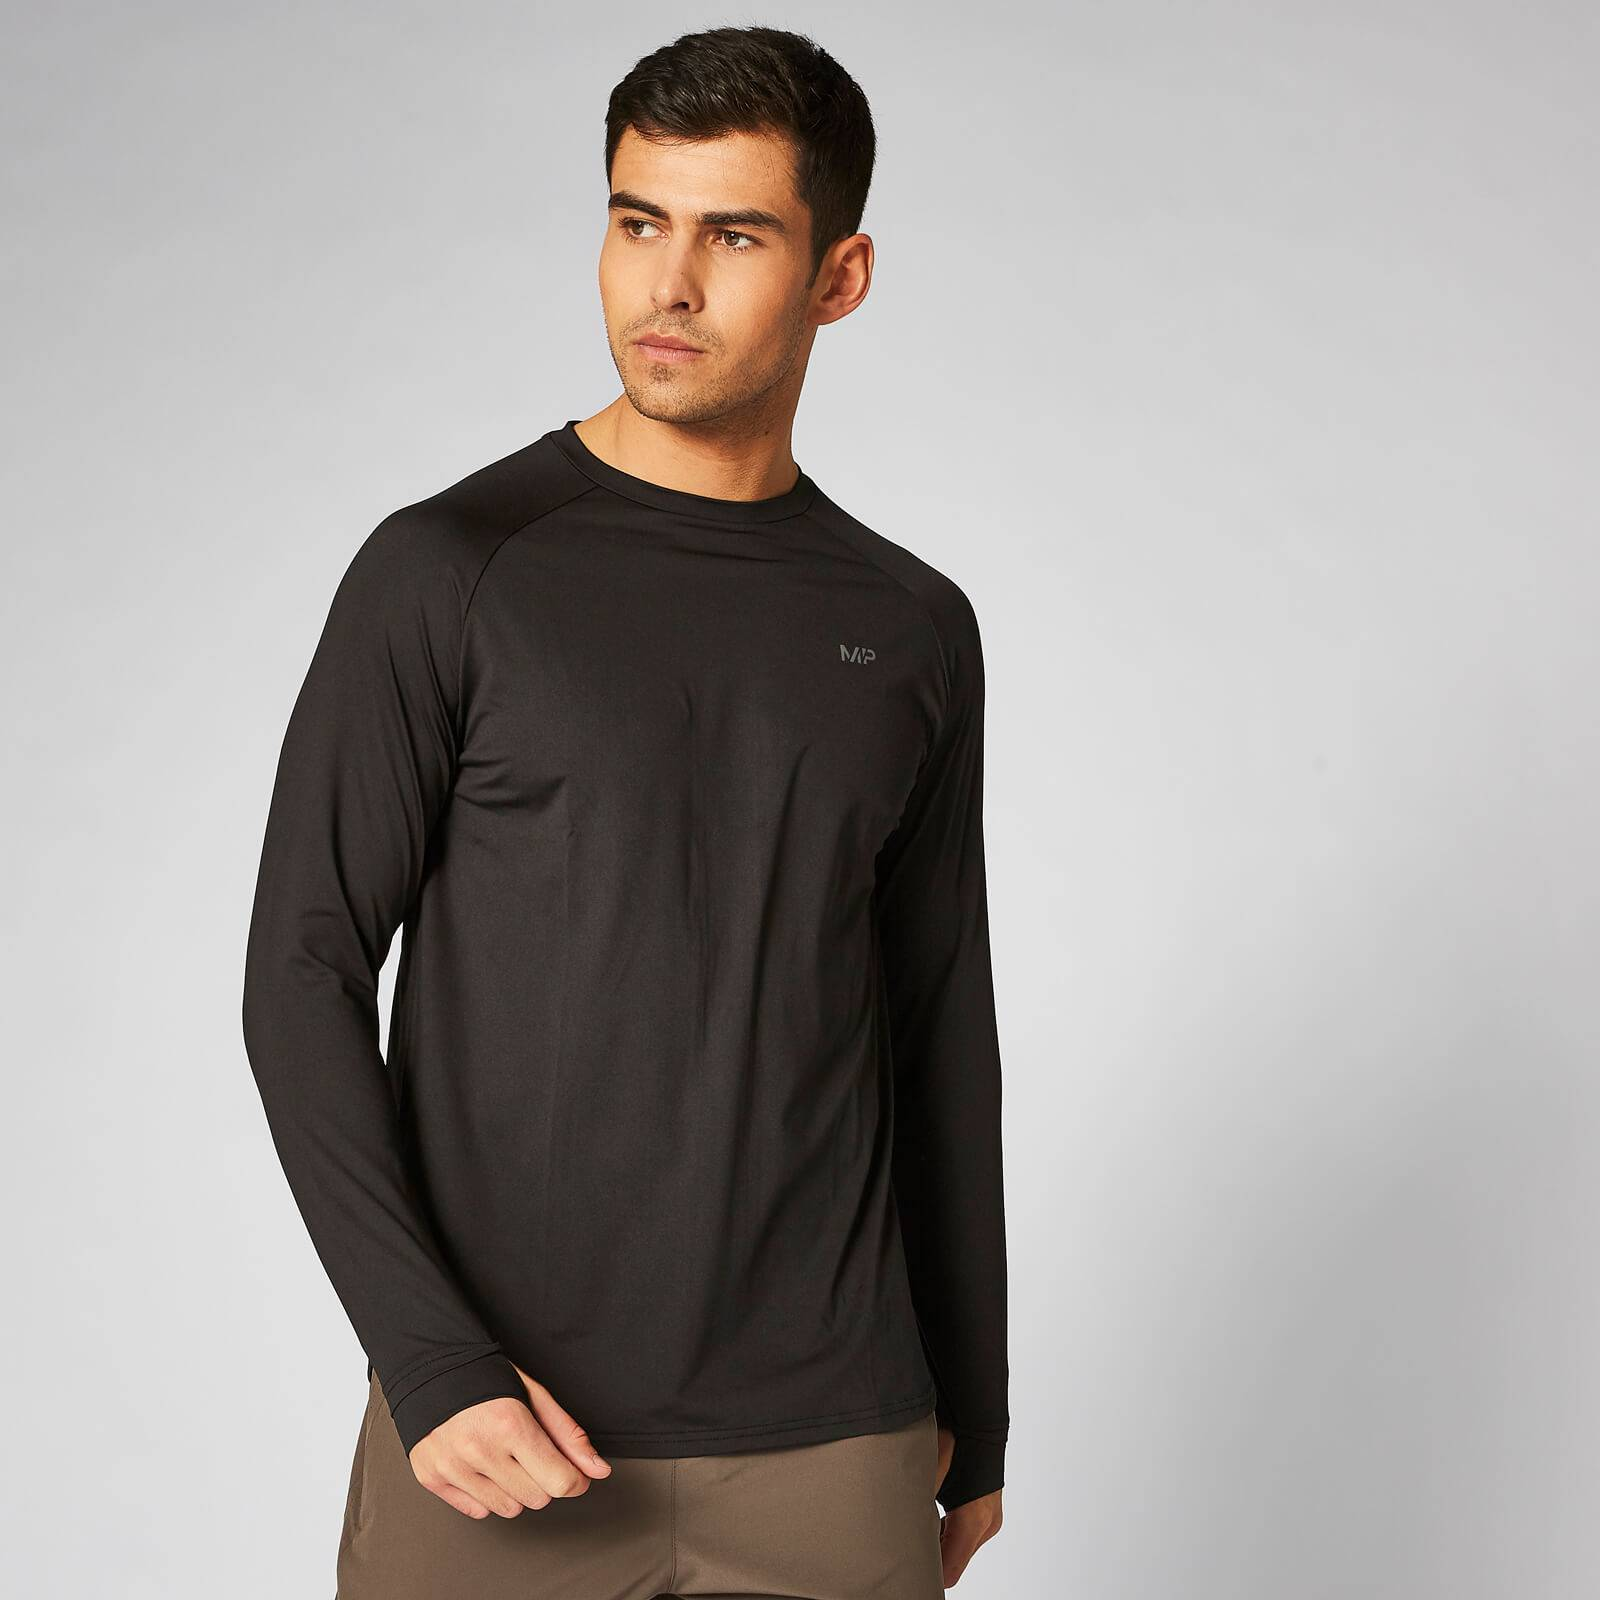 Myprotein Dry-Tech Infinity Long-Sleeve T-Shirt – Black - M